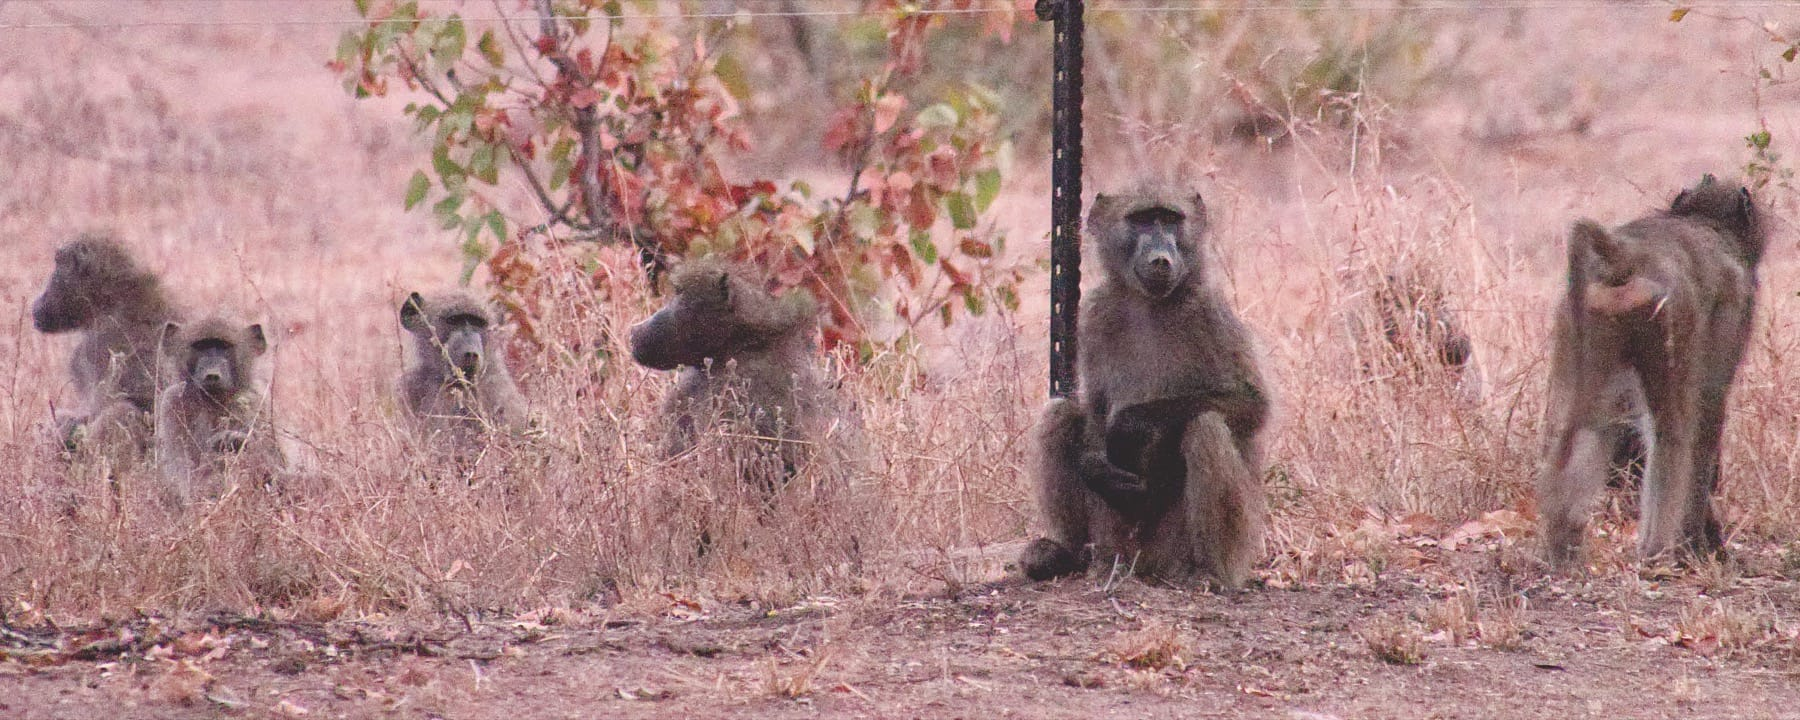 Baboons visiting the camp